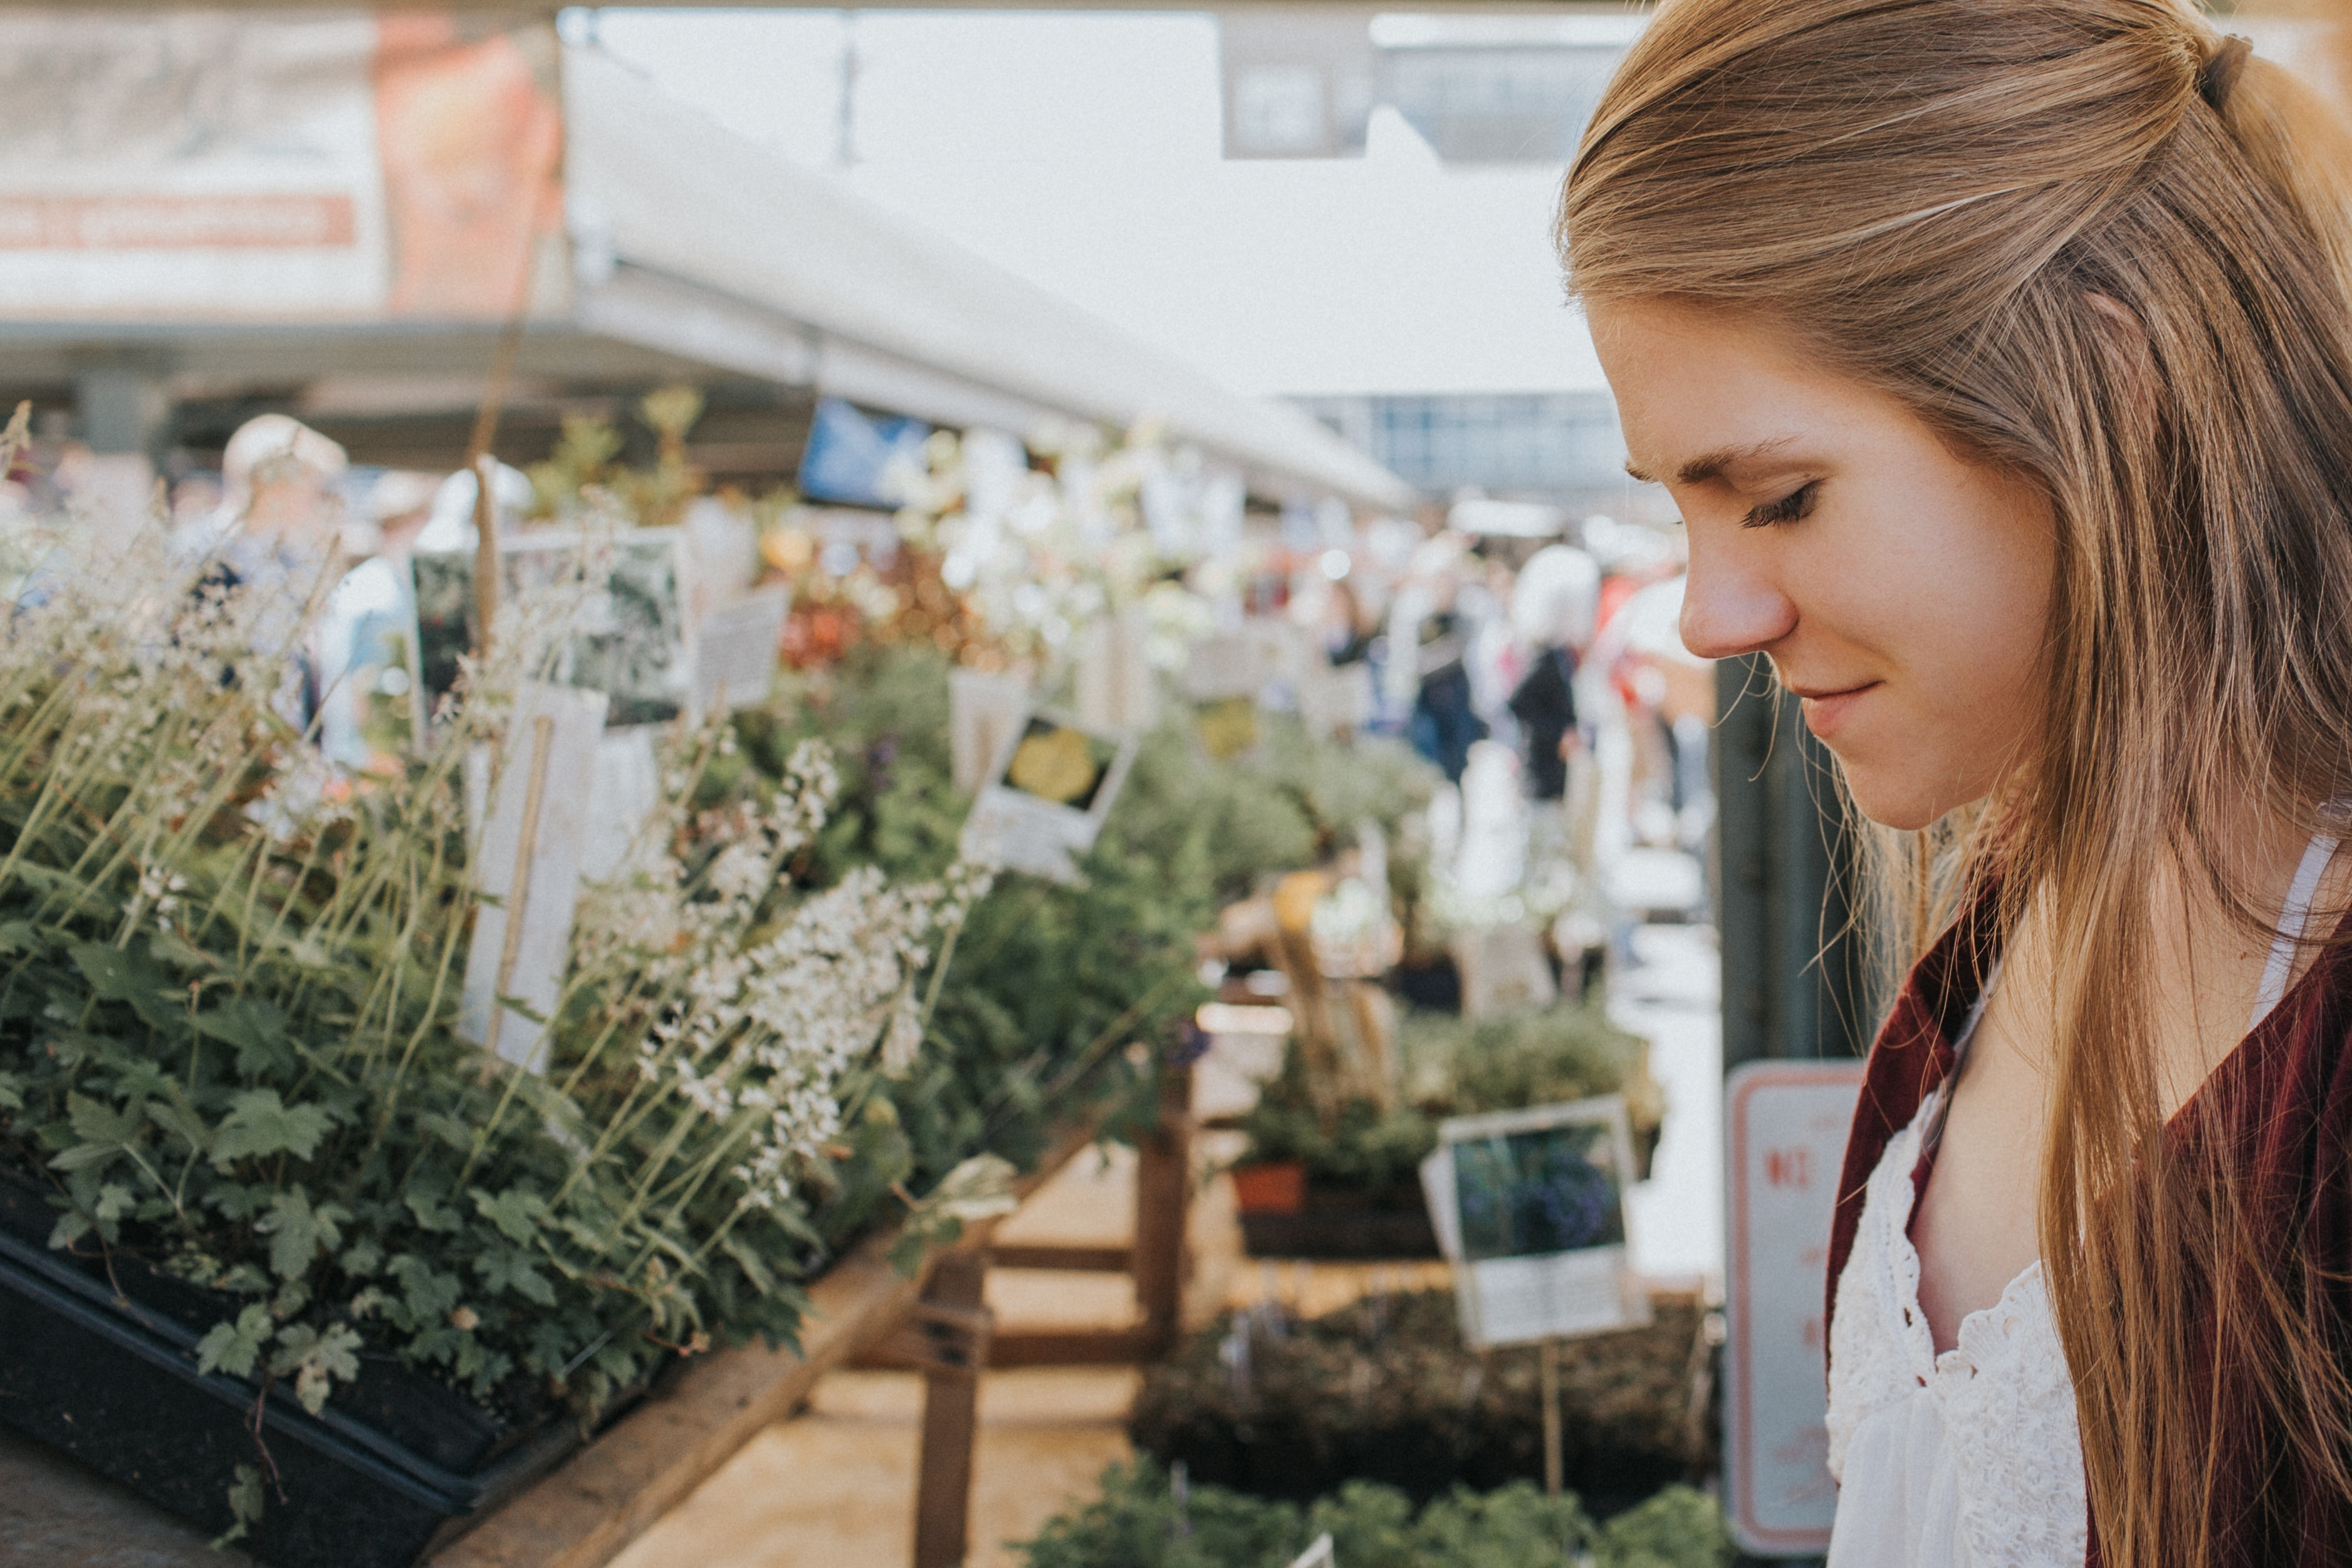 A smiling woman near a stall with green plants at a farmers' market